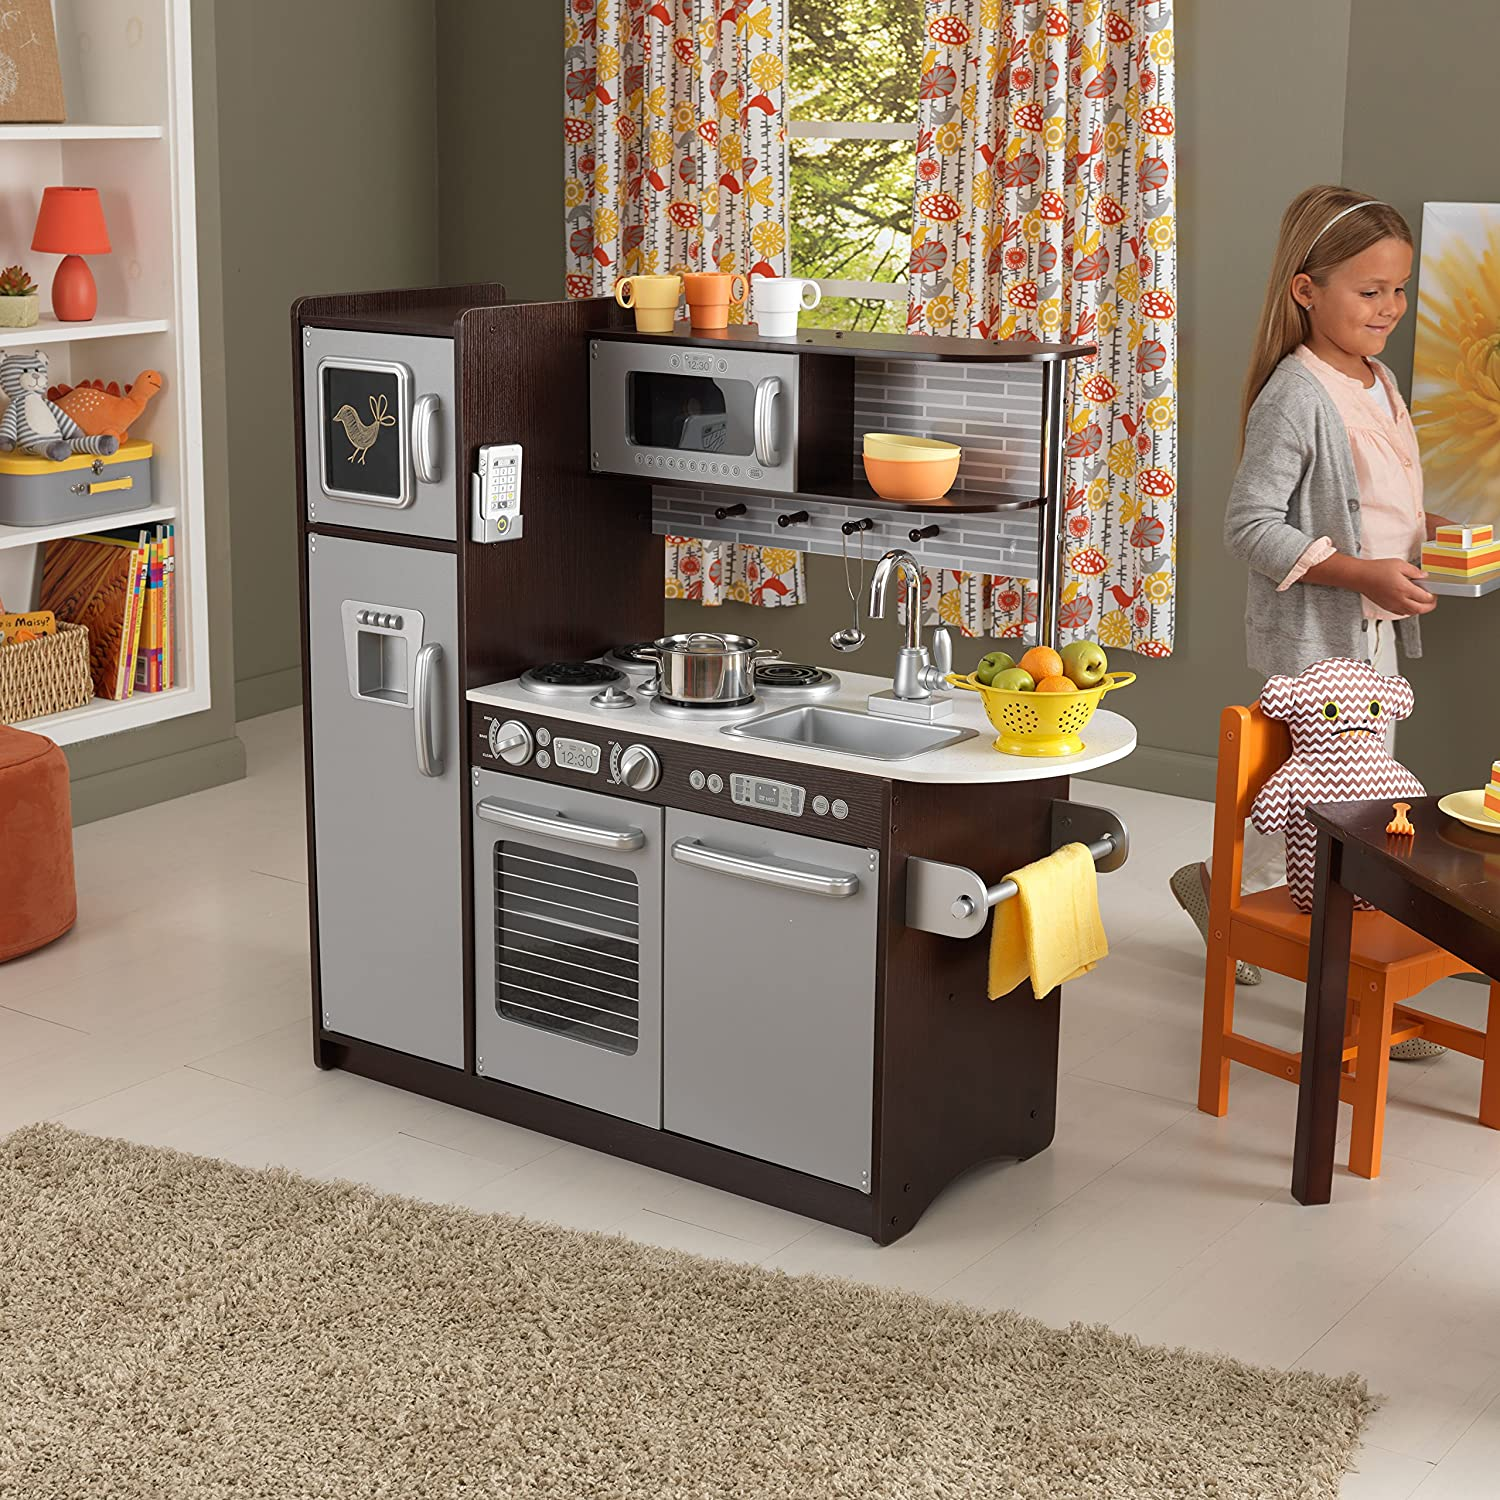 Best Play Kitchen for Kids 2017: Everything You Need to Know! - Kind ...